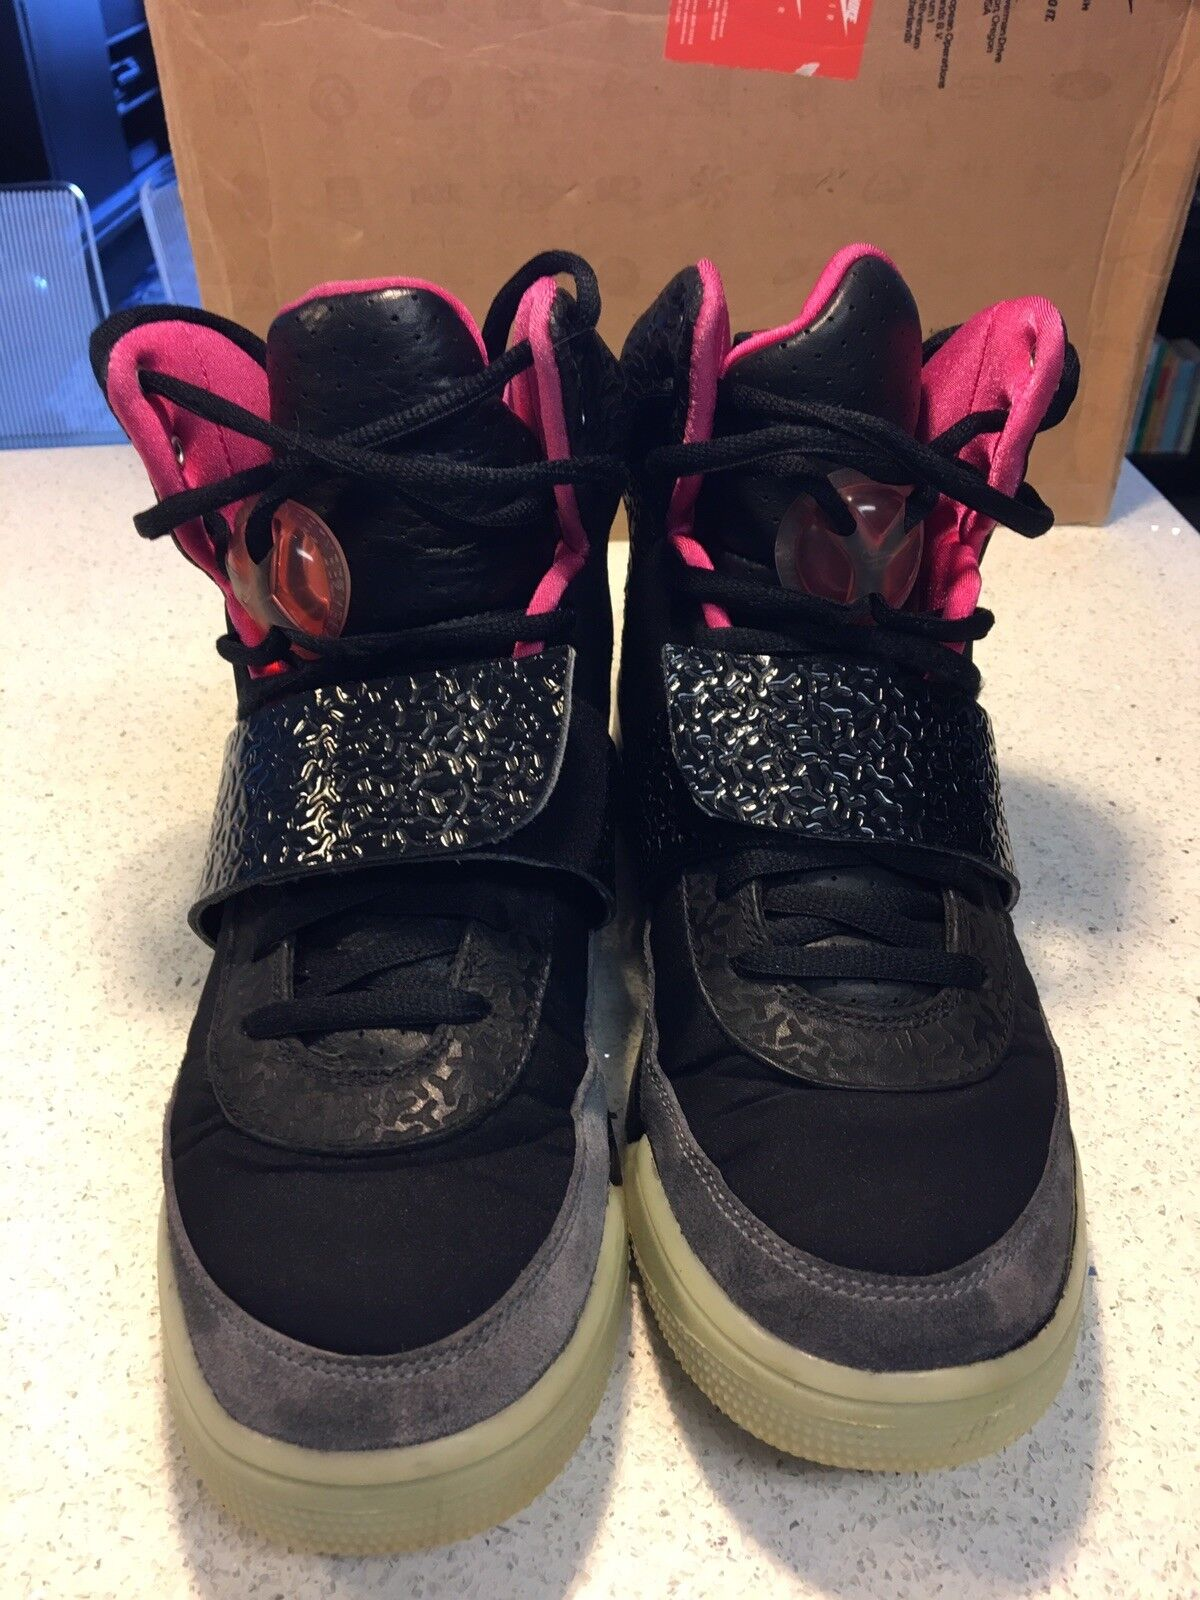 Nike Air Yeezy 1 Blink Sz 9.5 Black/Pink 100% Authentic NDS Cheap and beautiful fashion